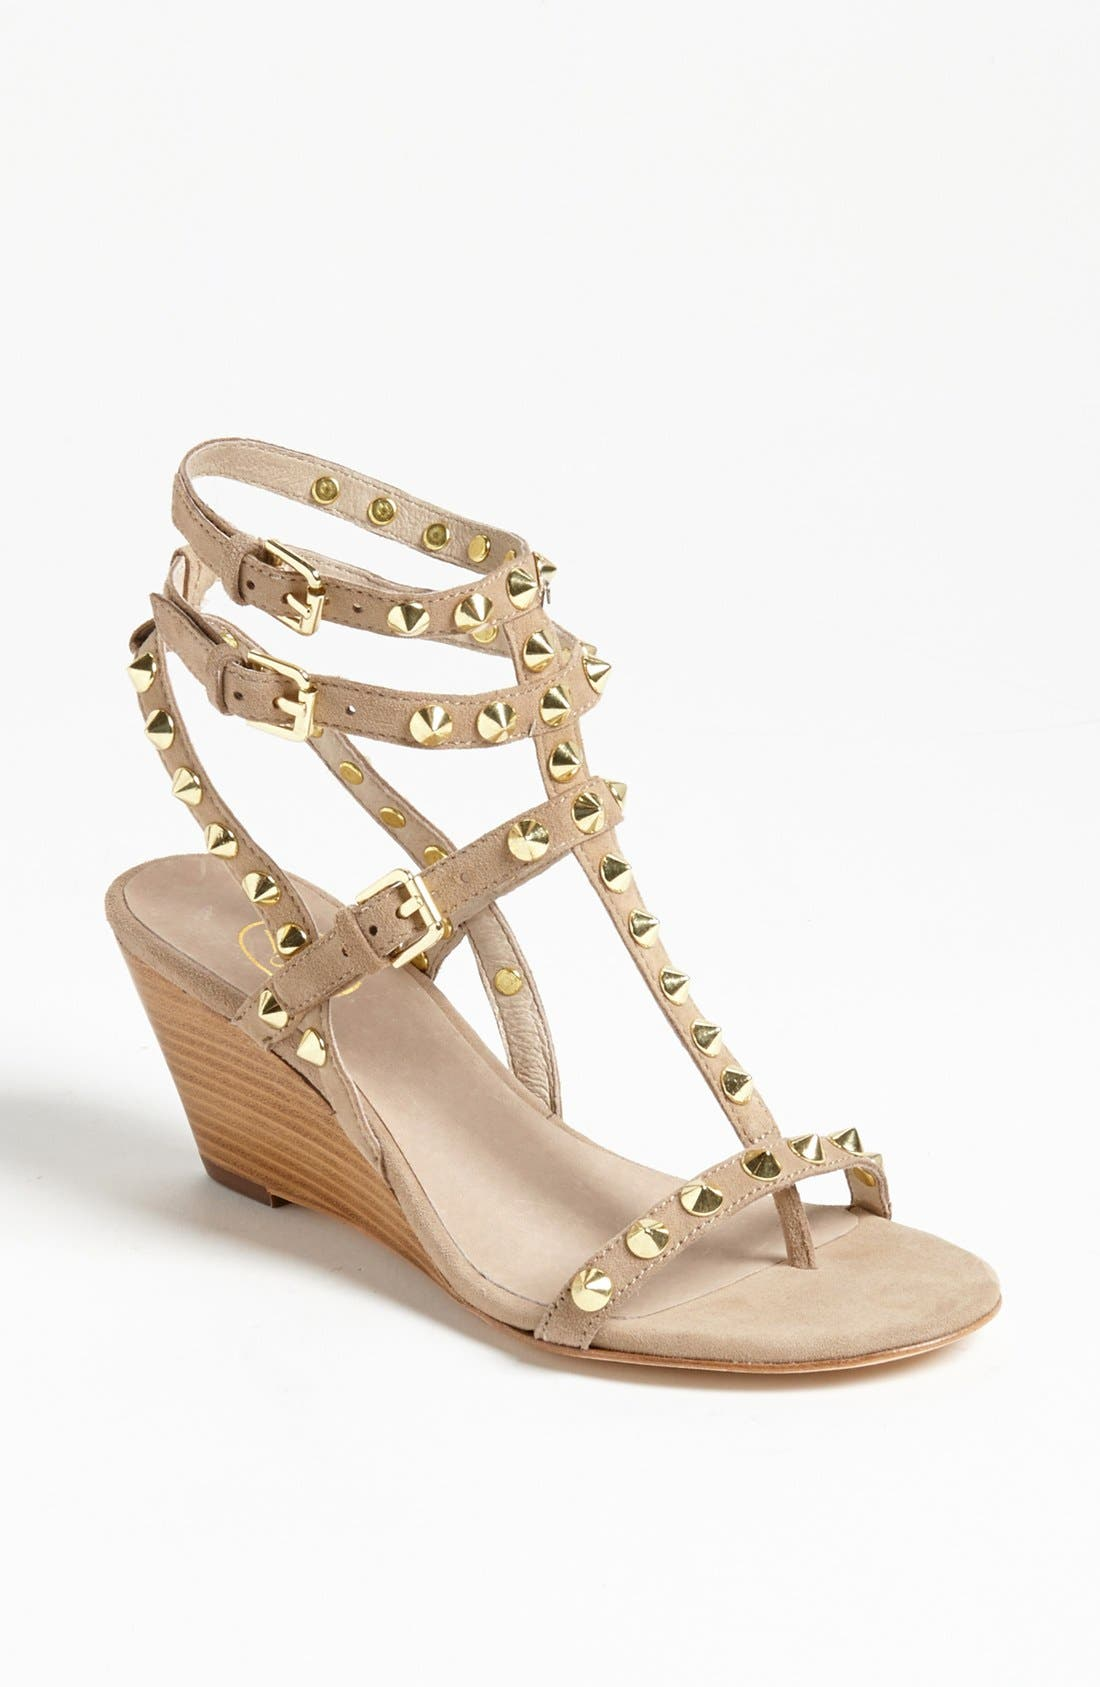 Alternate Image 1 Selected - Ash 'Delirious' Sandal